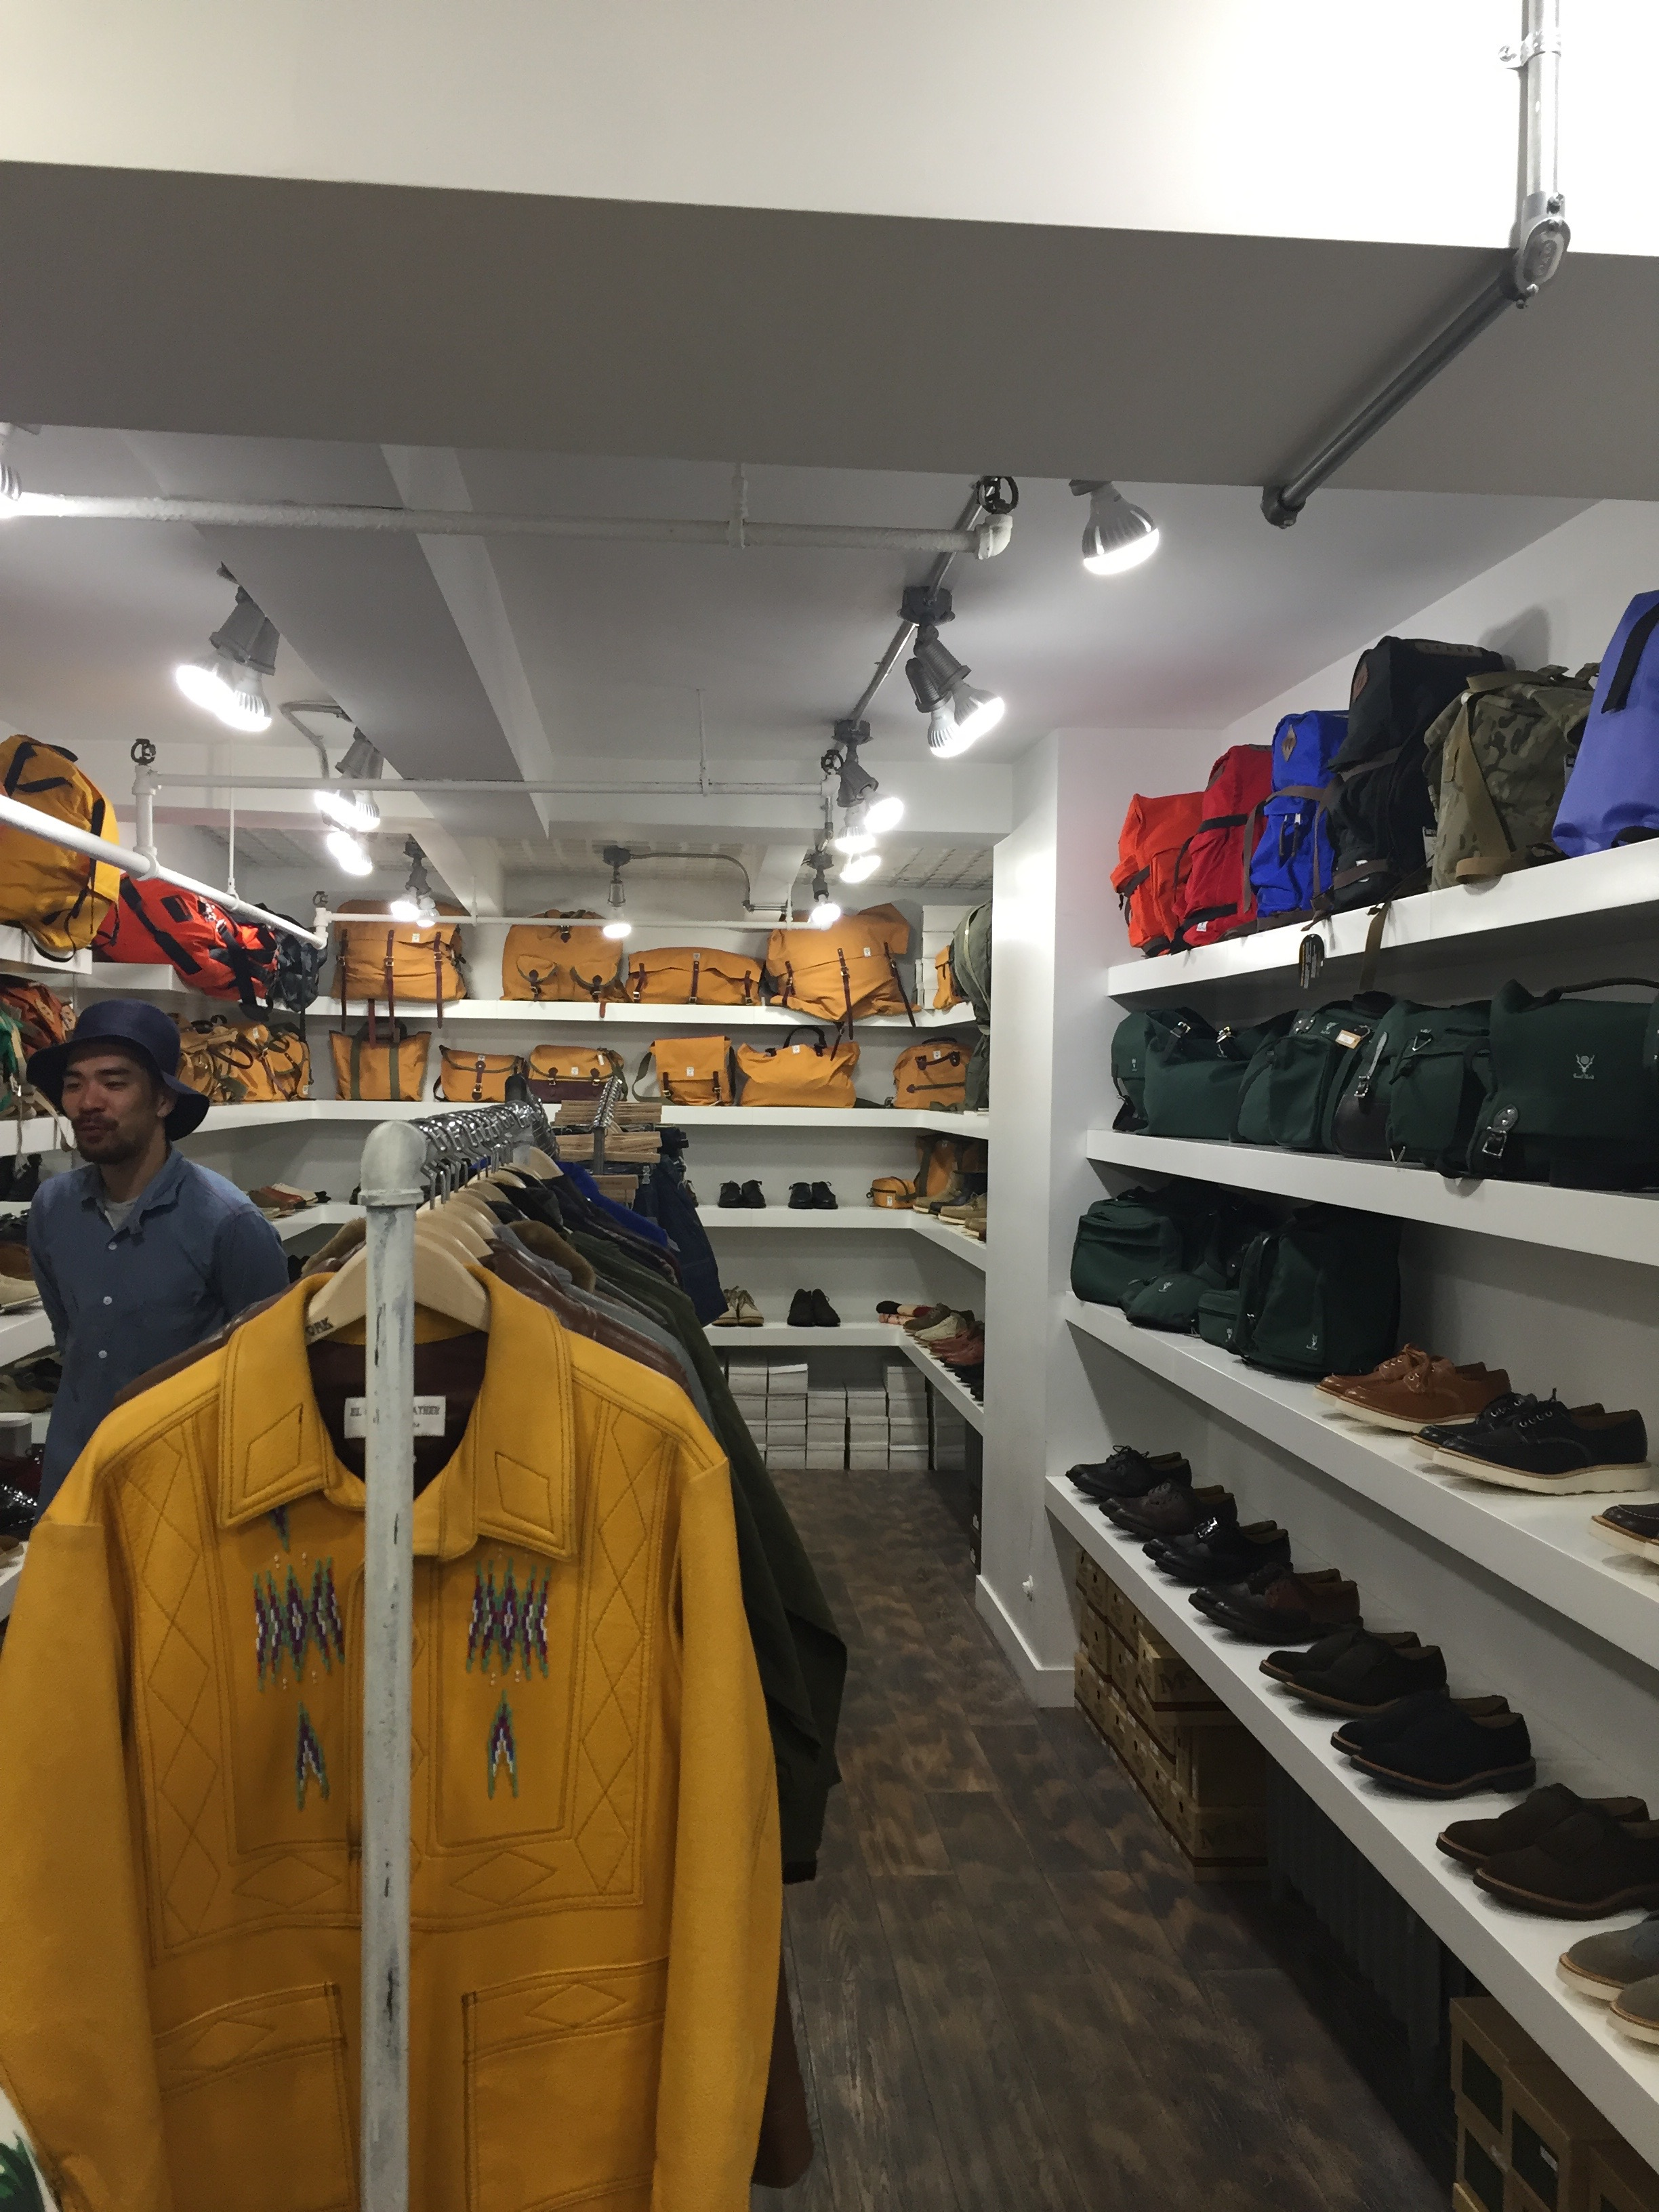 A look inside: Nepenthes, NYC - RampBoy